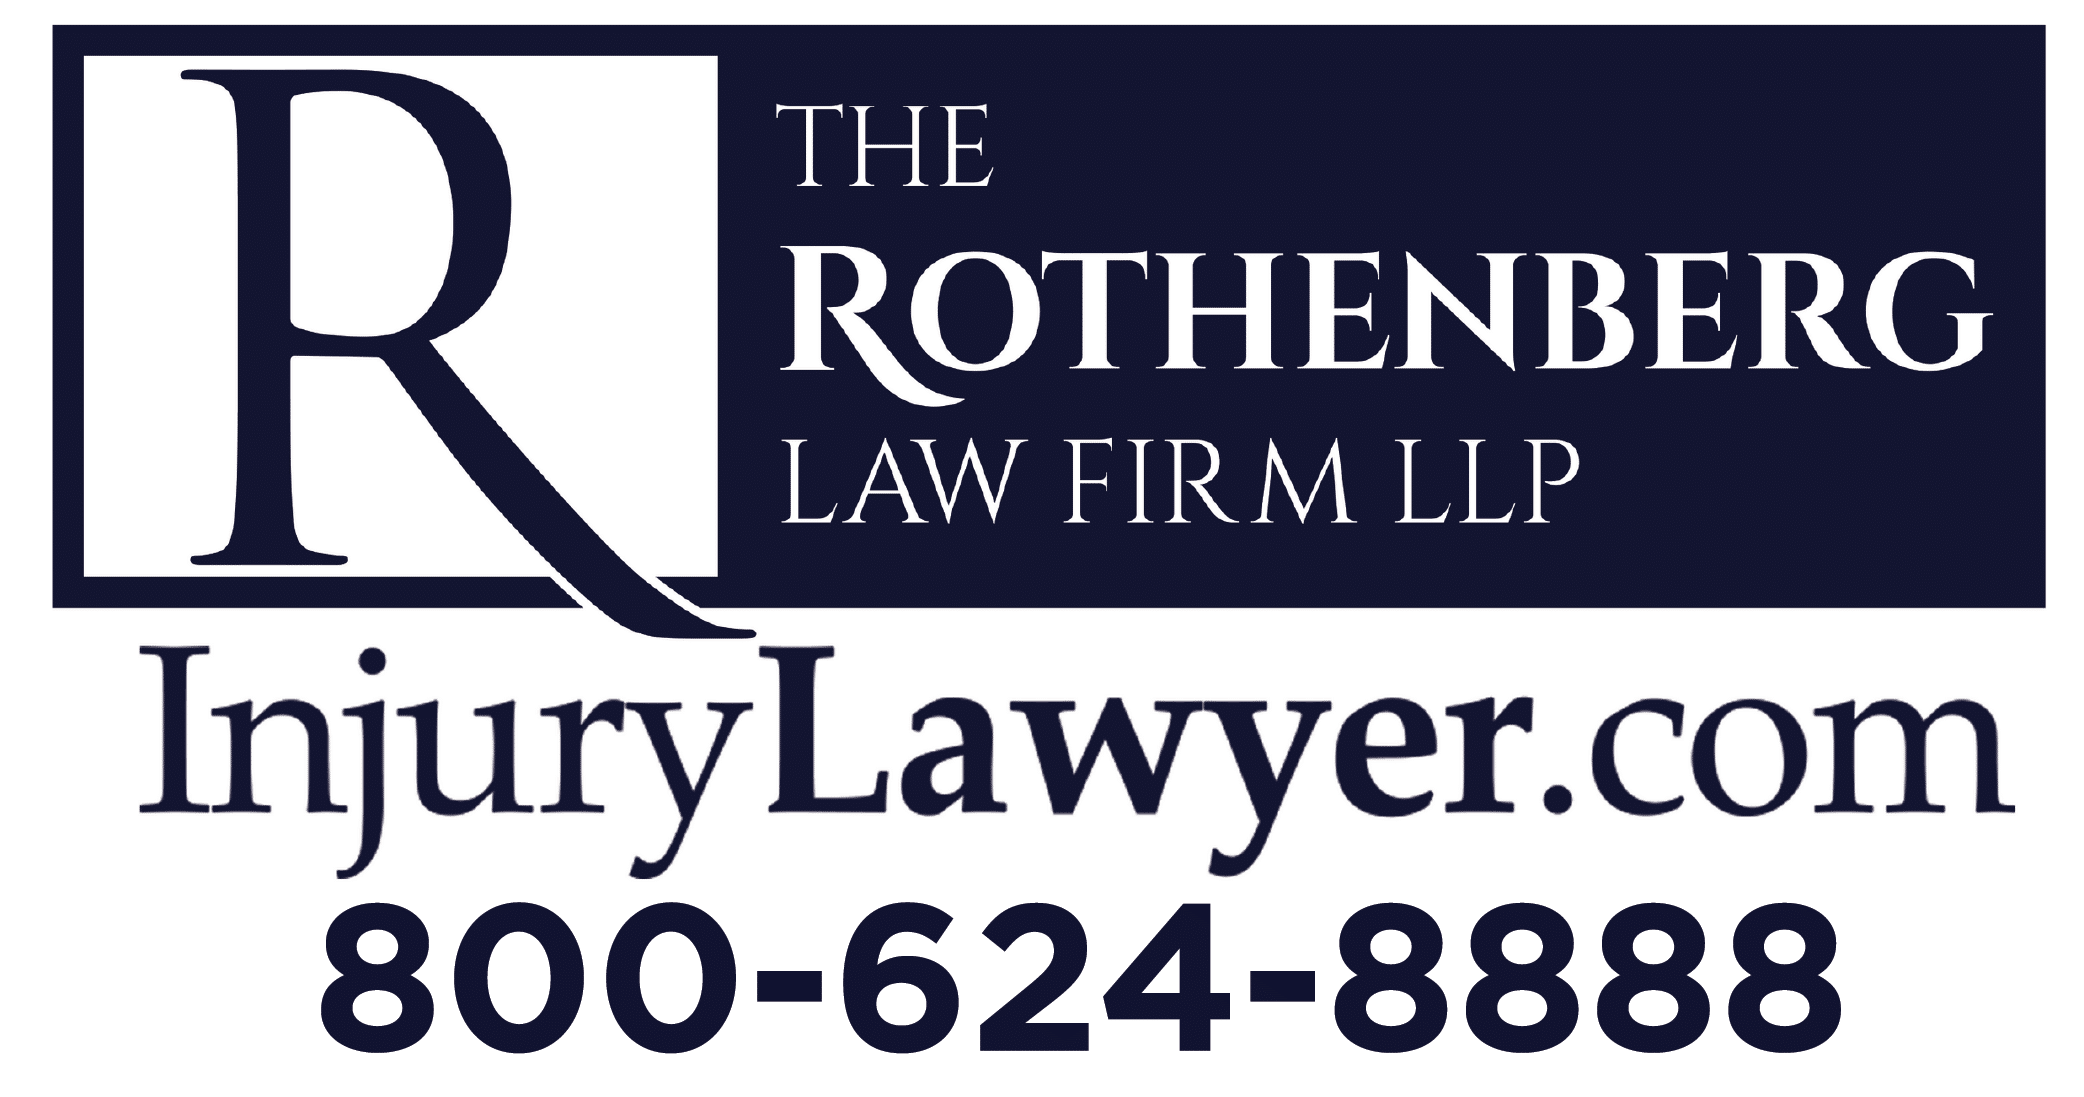 New IUDs and the Failure to Warn - The Rothenberg Law Firm LLP